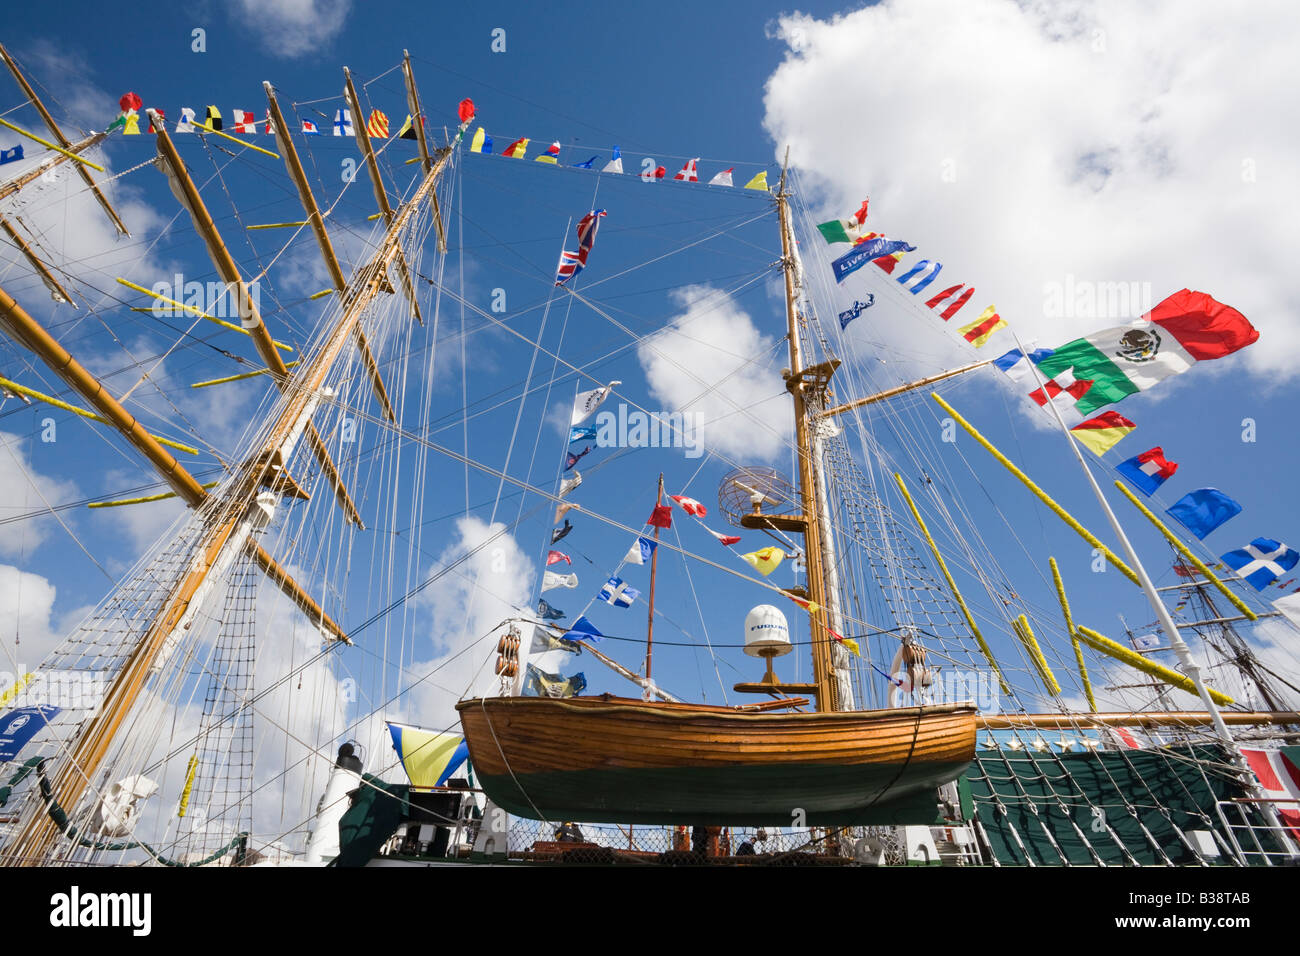 Wooden lifeboat on Cuauhtemoc three-masted Barque from Mexico in Tall Ships race berthed in dock - Stock Image